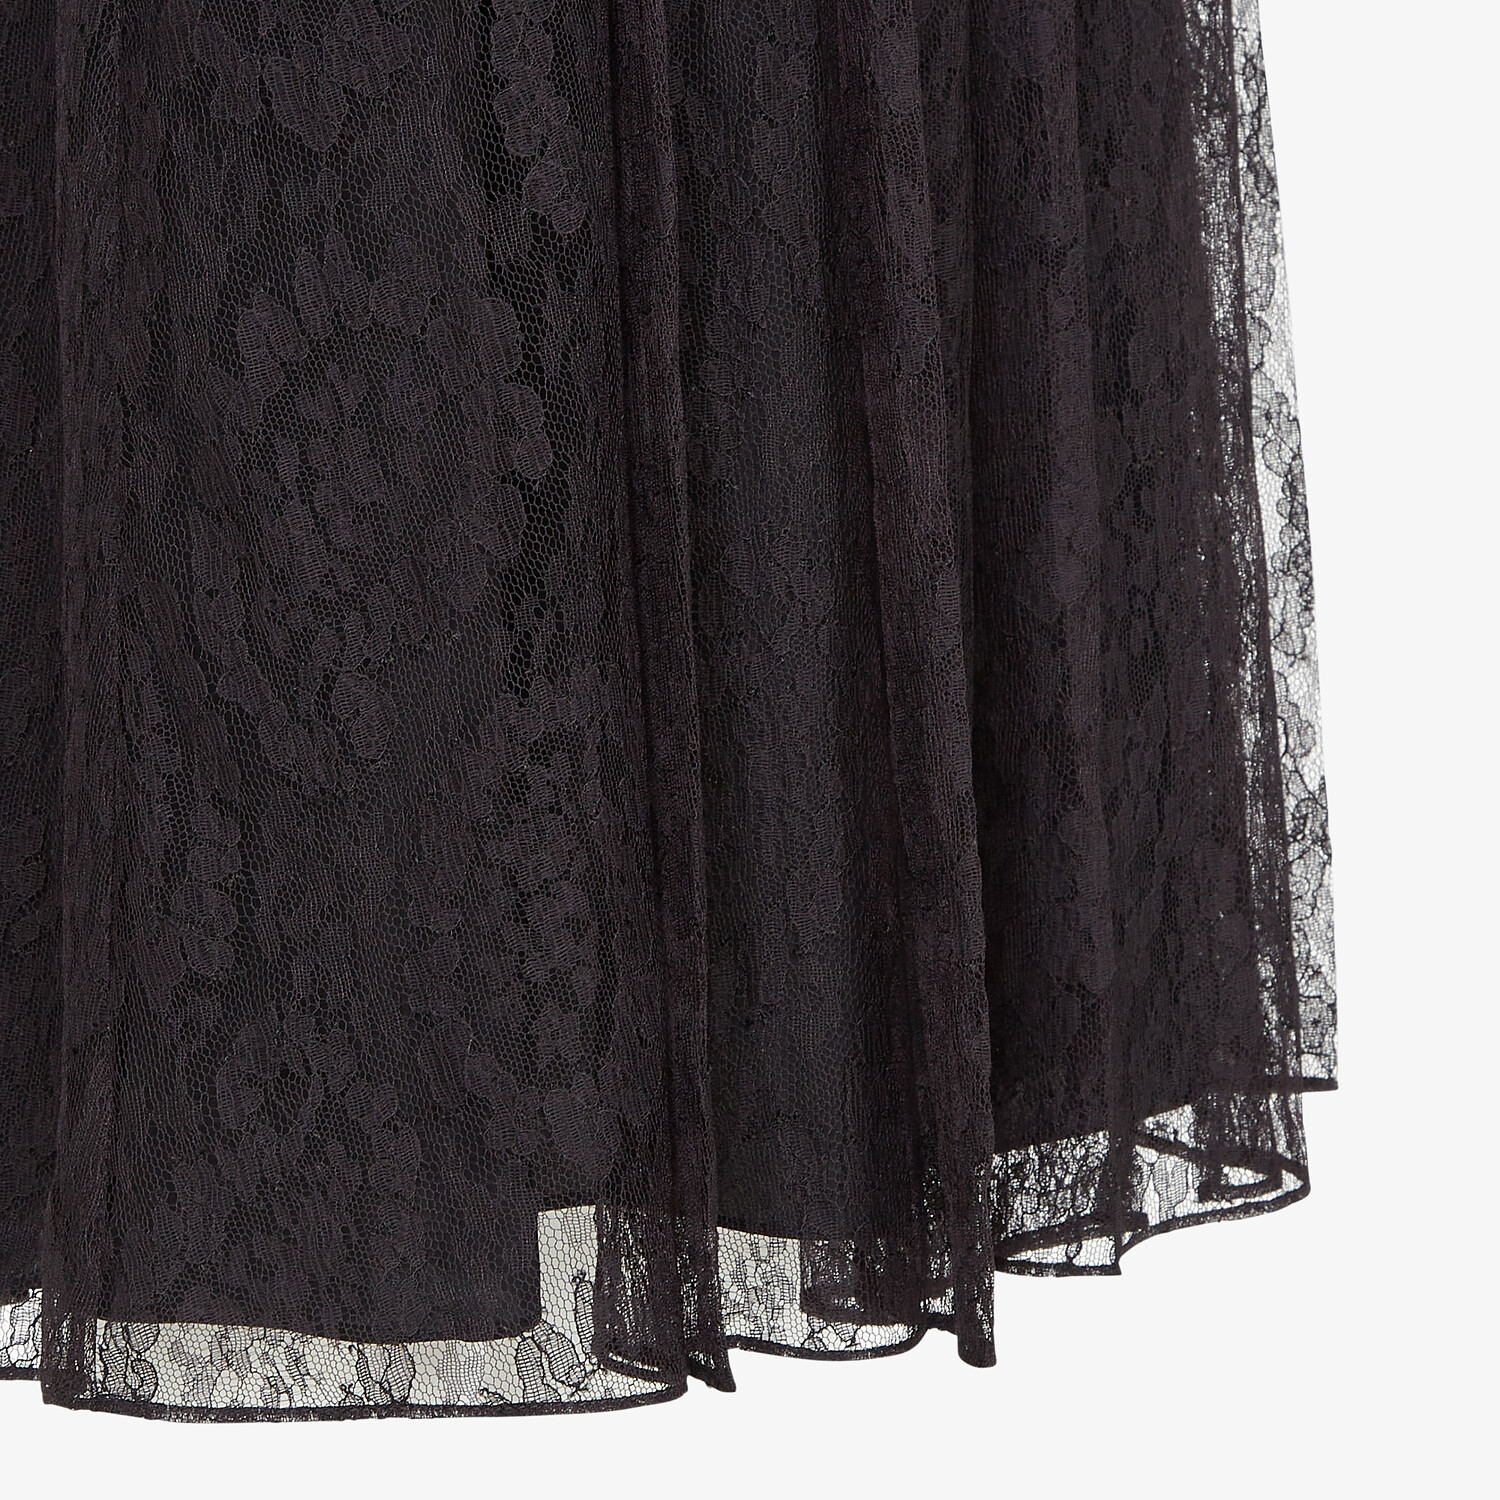 FENDI SKIRT - Black lace skirt - view 3 detail